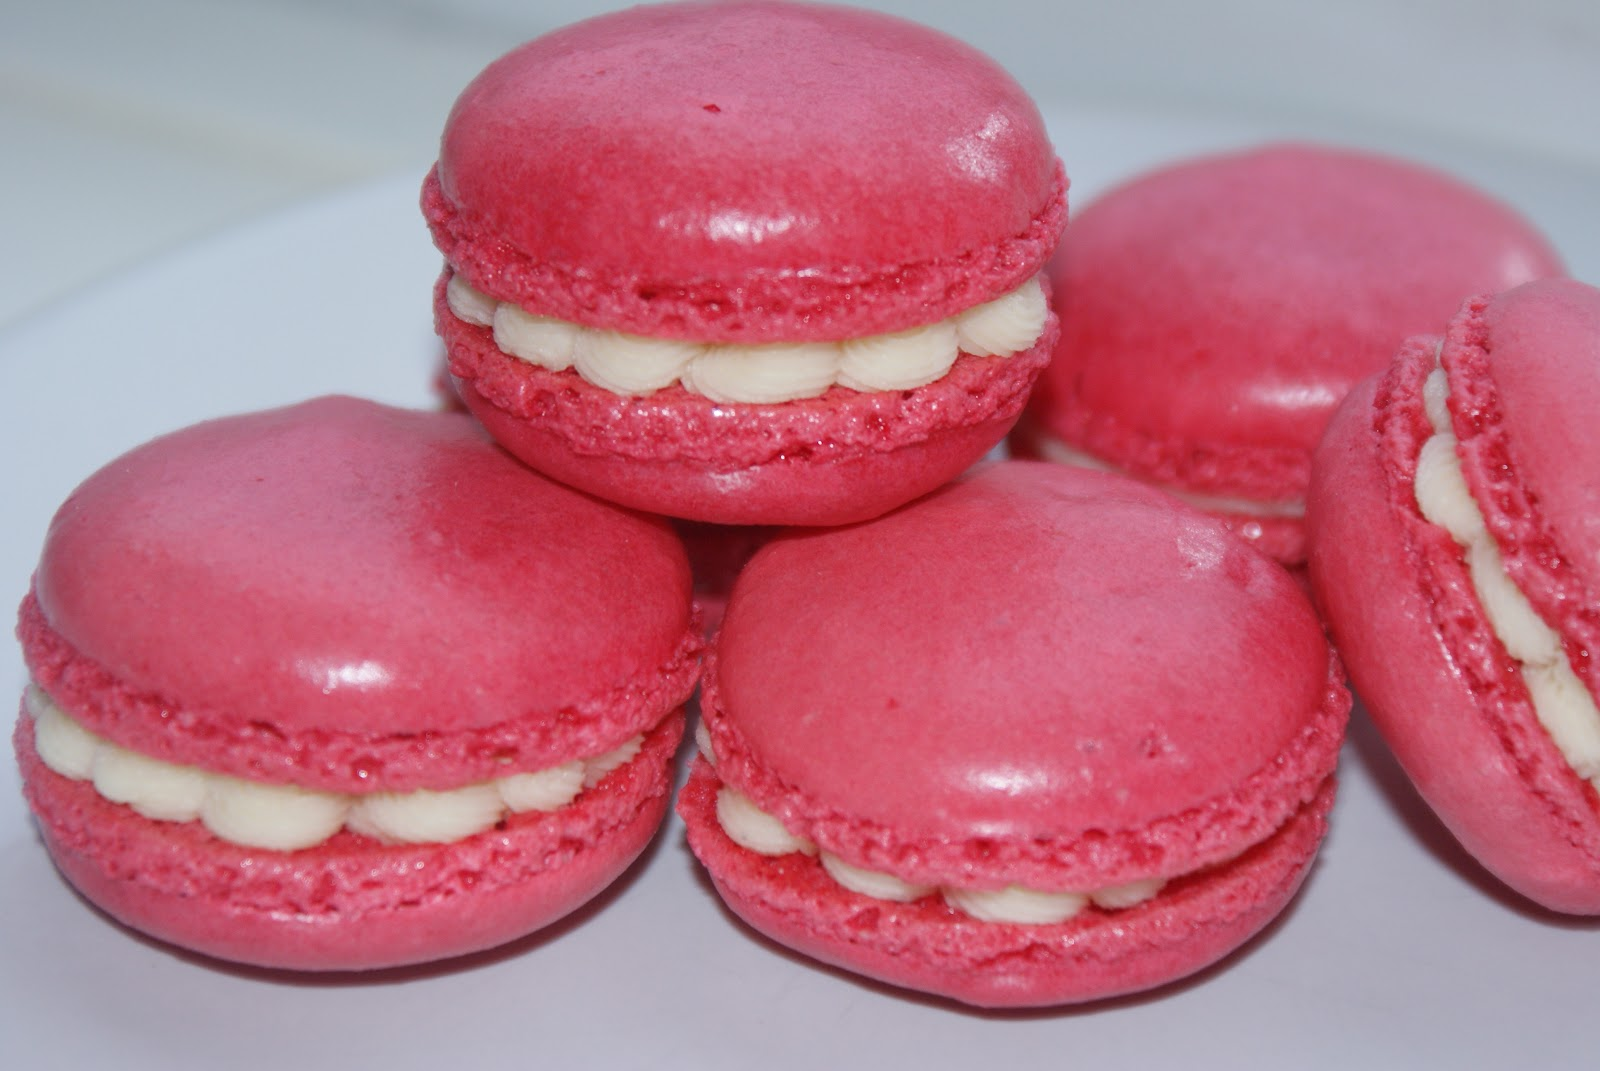 ... an ultimately delicious Macaroon – Raspberry and White Chocolate